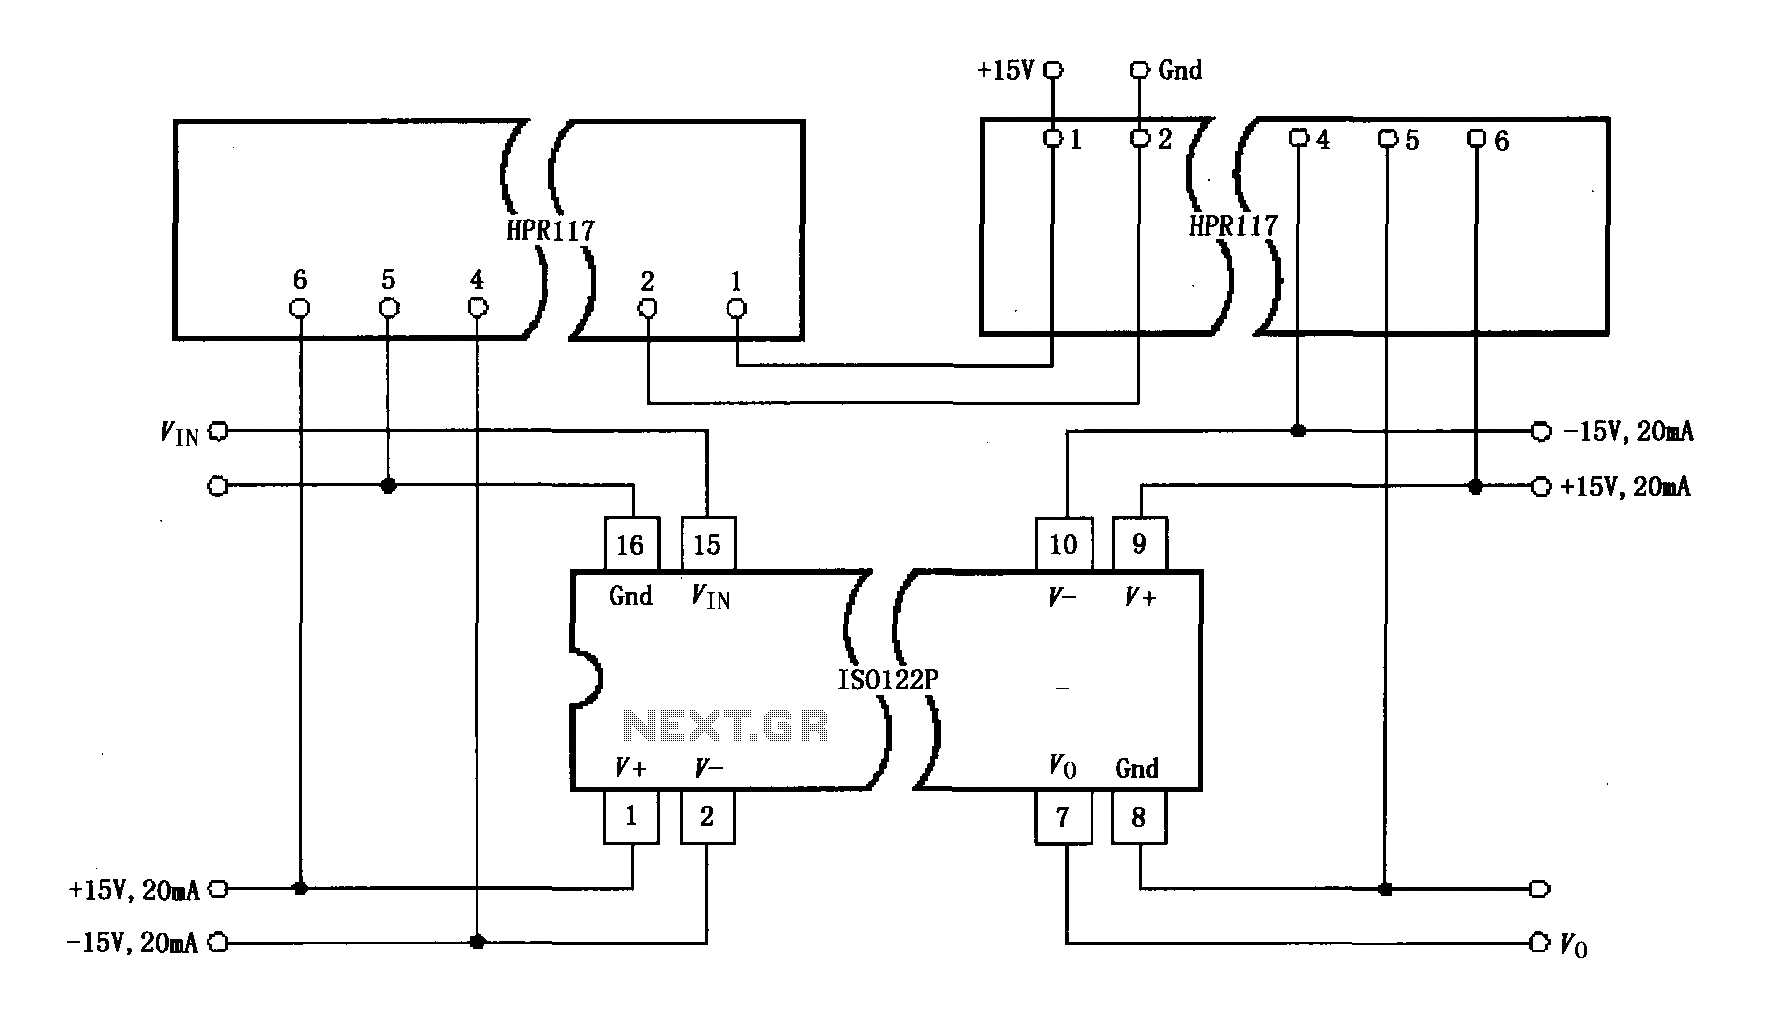 ISO122P / 124 power supply has a three-port isolation amplifier circuit diagram - schematic